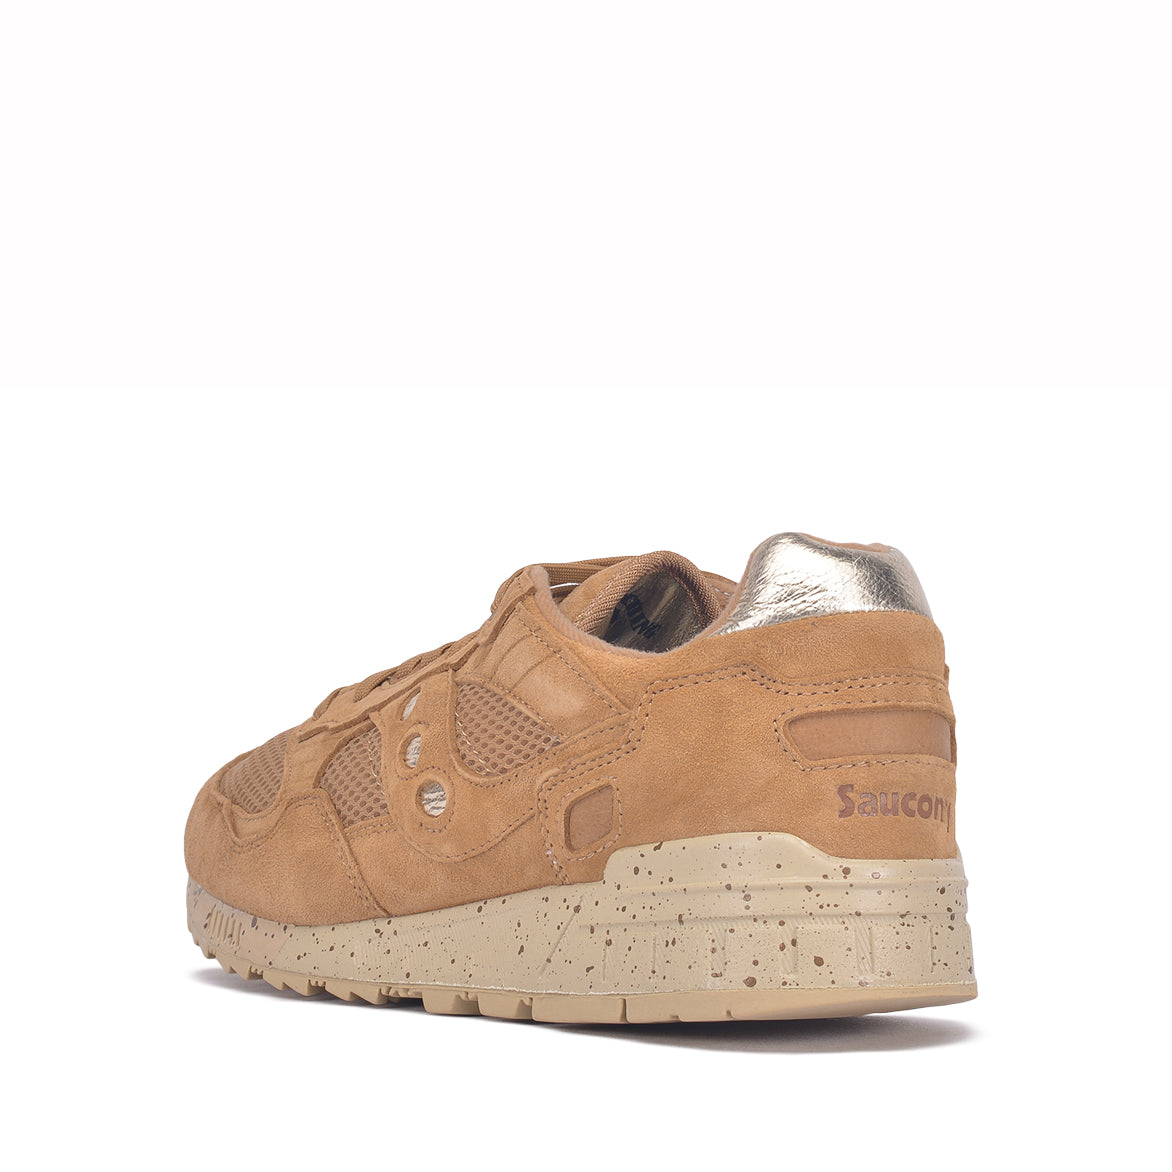 "SHADOW 5000 ""GOLD RUSH"" - TAN / GOLD"